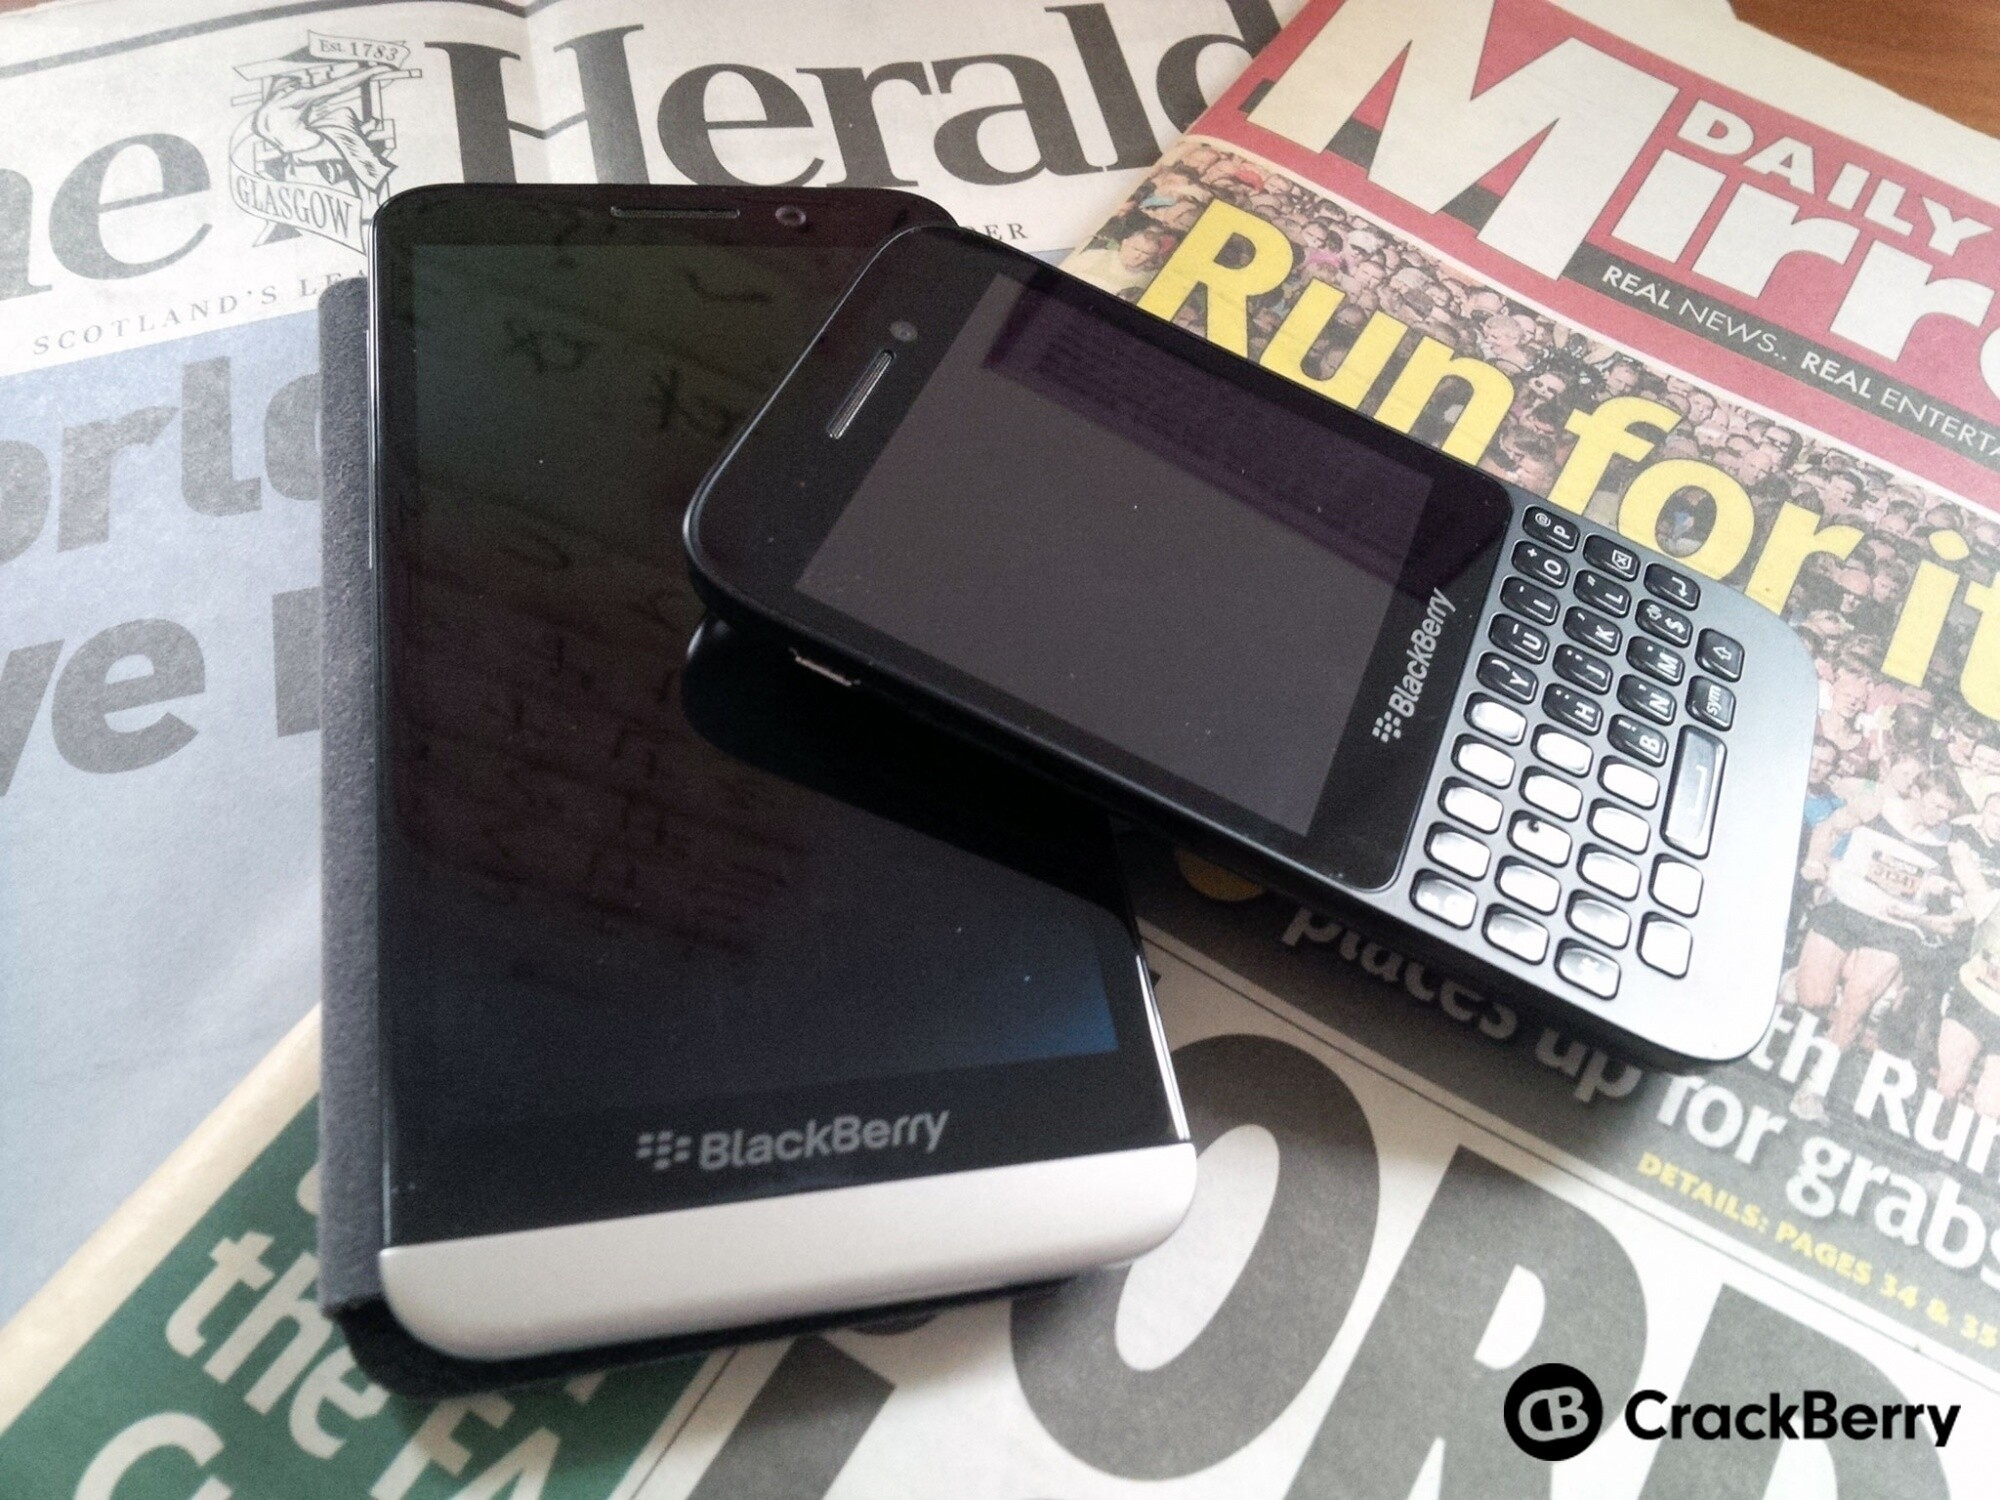 The top news apps for BlackBerry 10